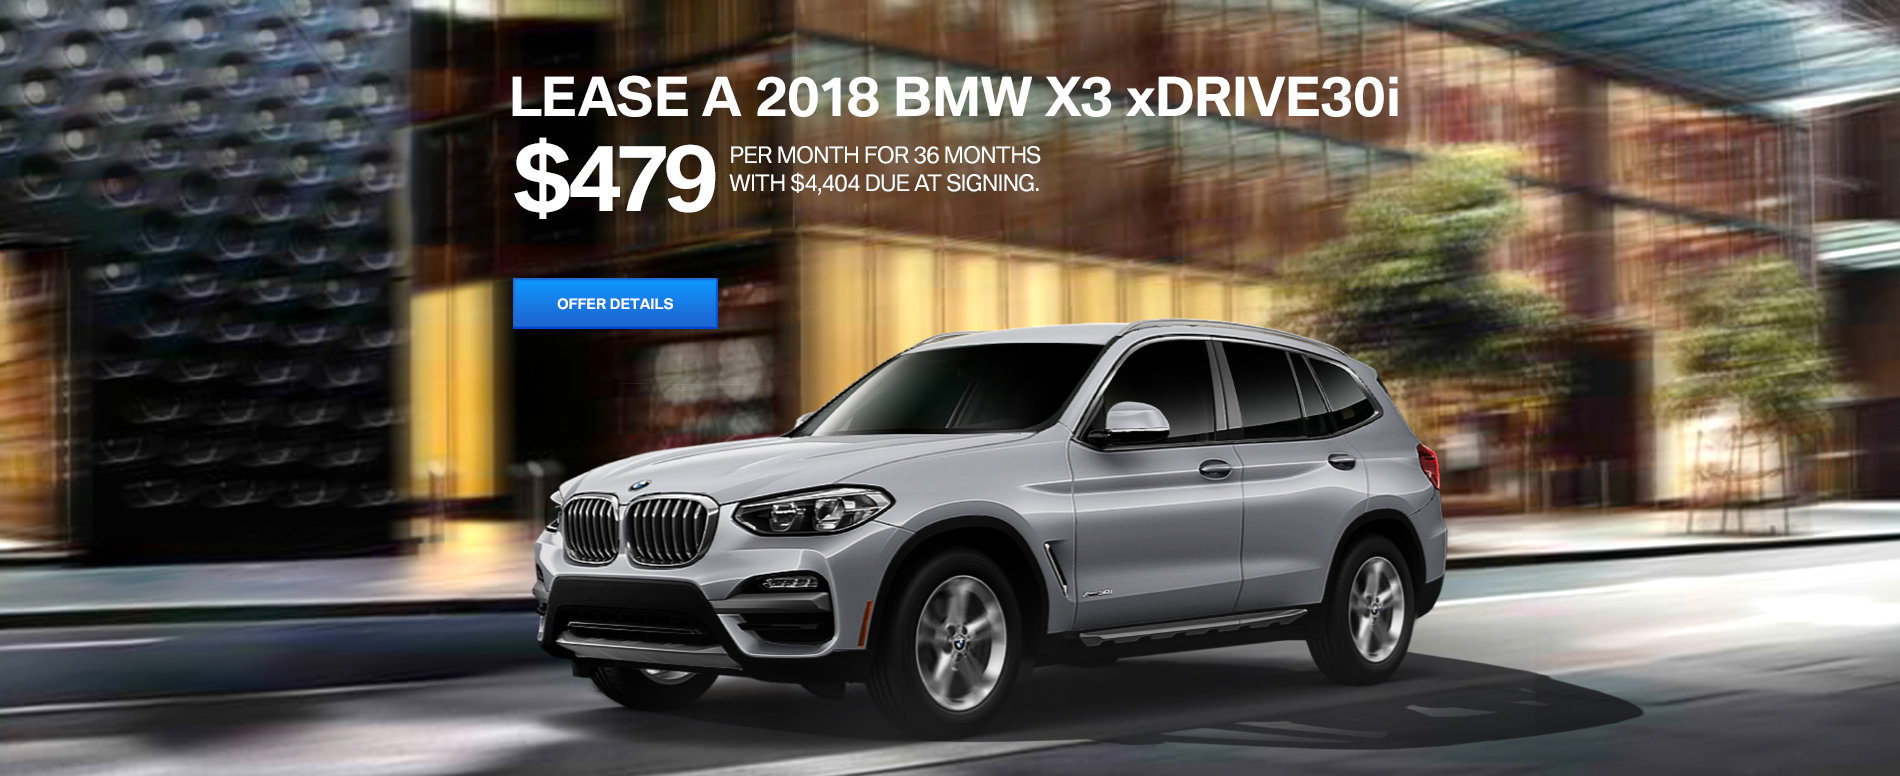 LEASE A 2018 X3 xDRIVE30i FOR $479 /MO FOR 36 MONTHS.